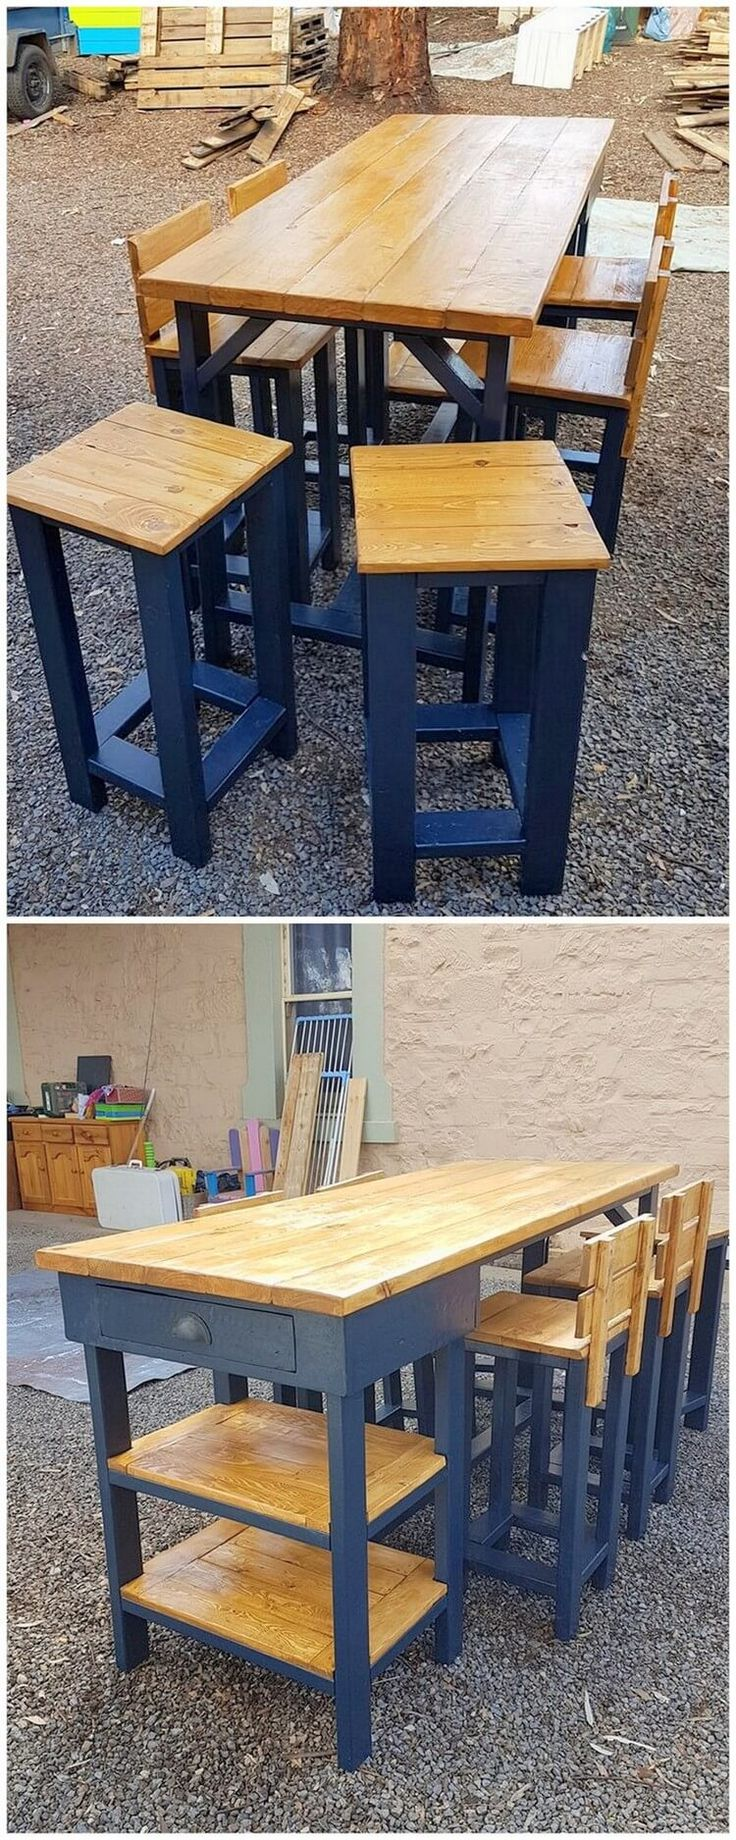 How about having a dining table in your house that is a combination of drawers and chairs? This image of wood pallet dining table is showcasing out the beautiful creation of the wood pallet table set alongside the pairing of the chairs and stools in it. Look closely! What did you found? The table is fitted perfectly with the drawers as well.